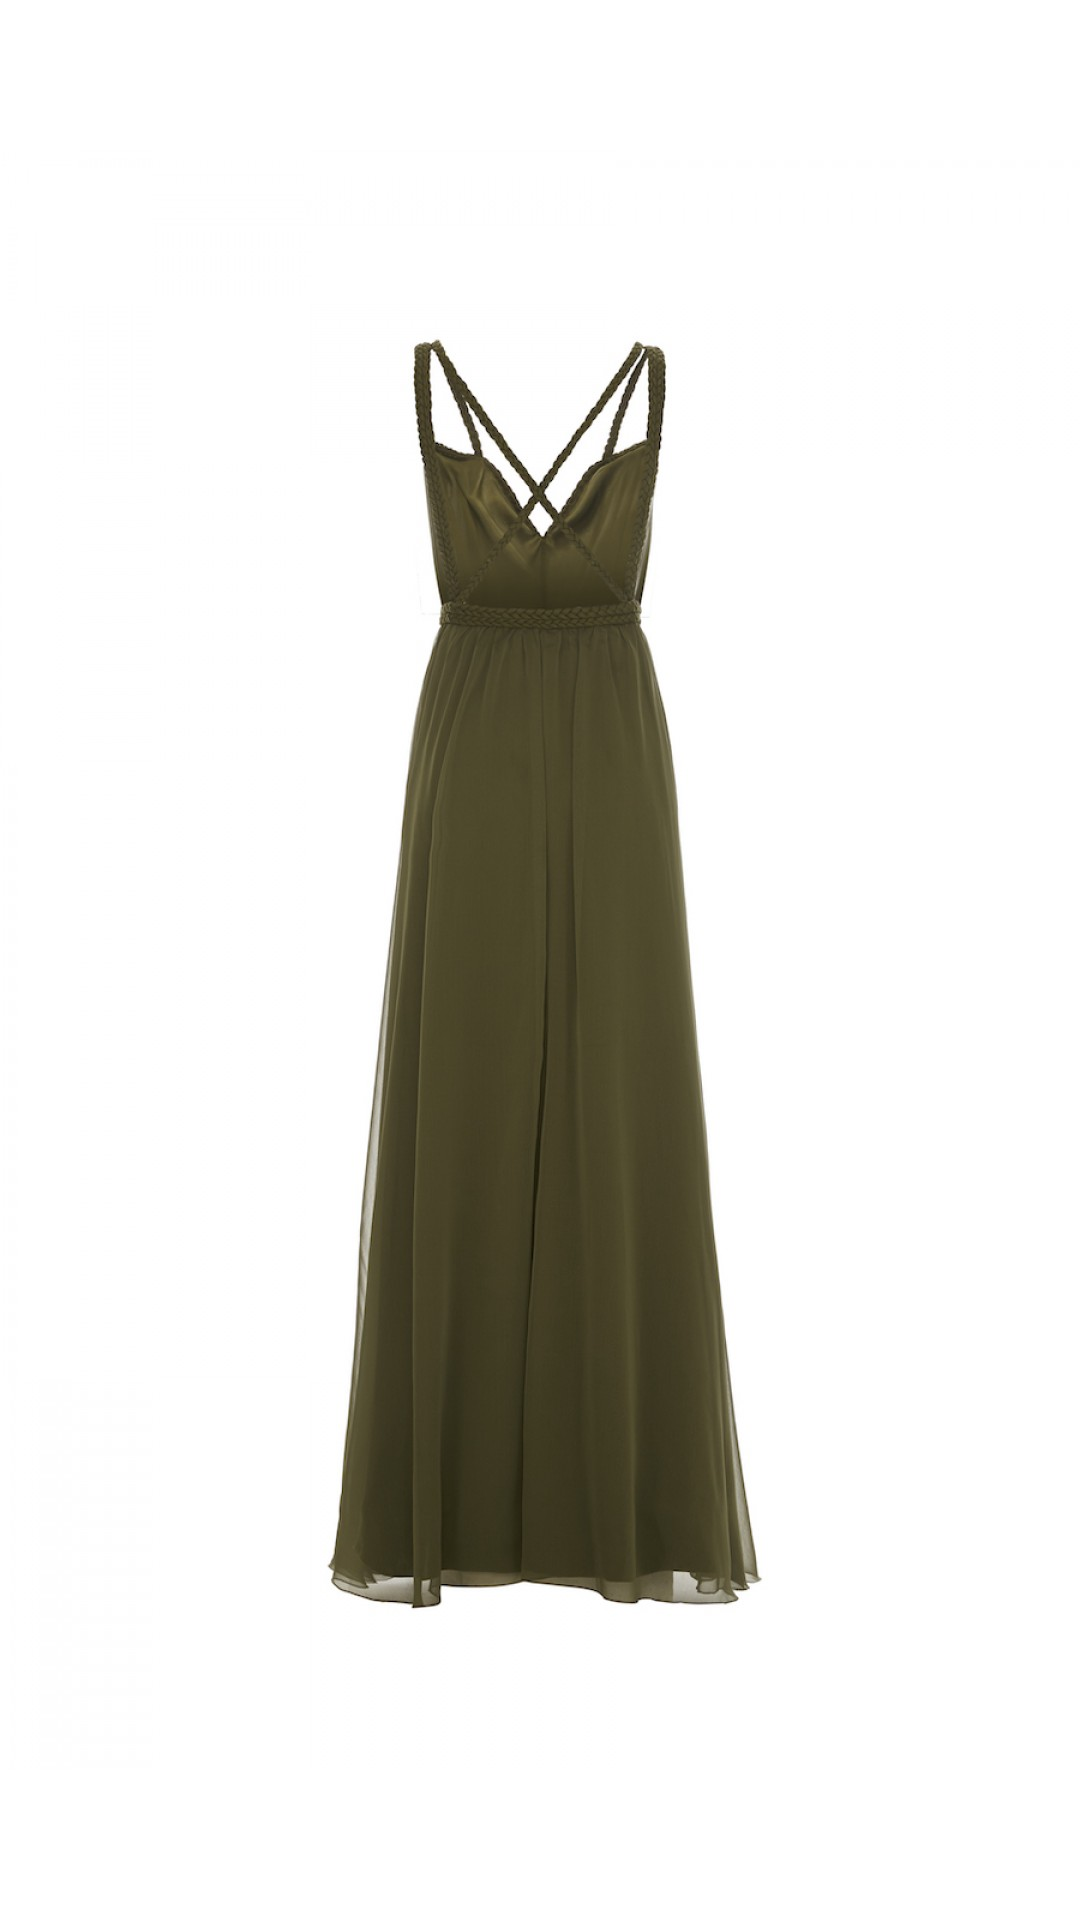 CHIFFON NIGHT DRESS